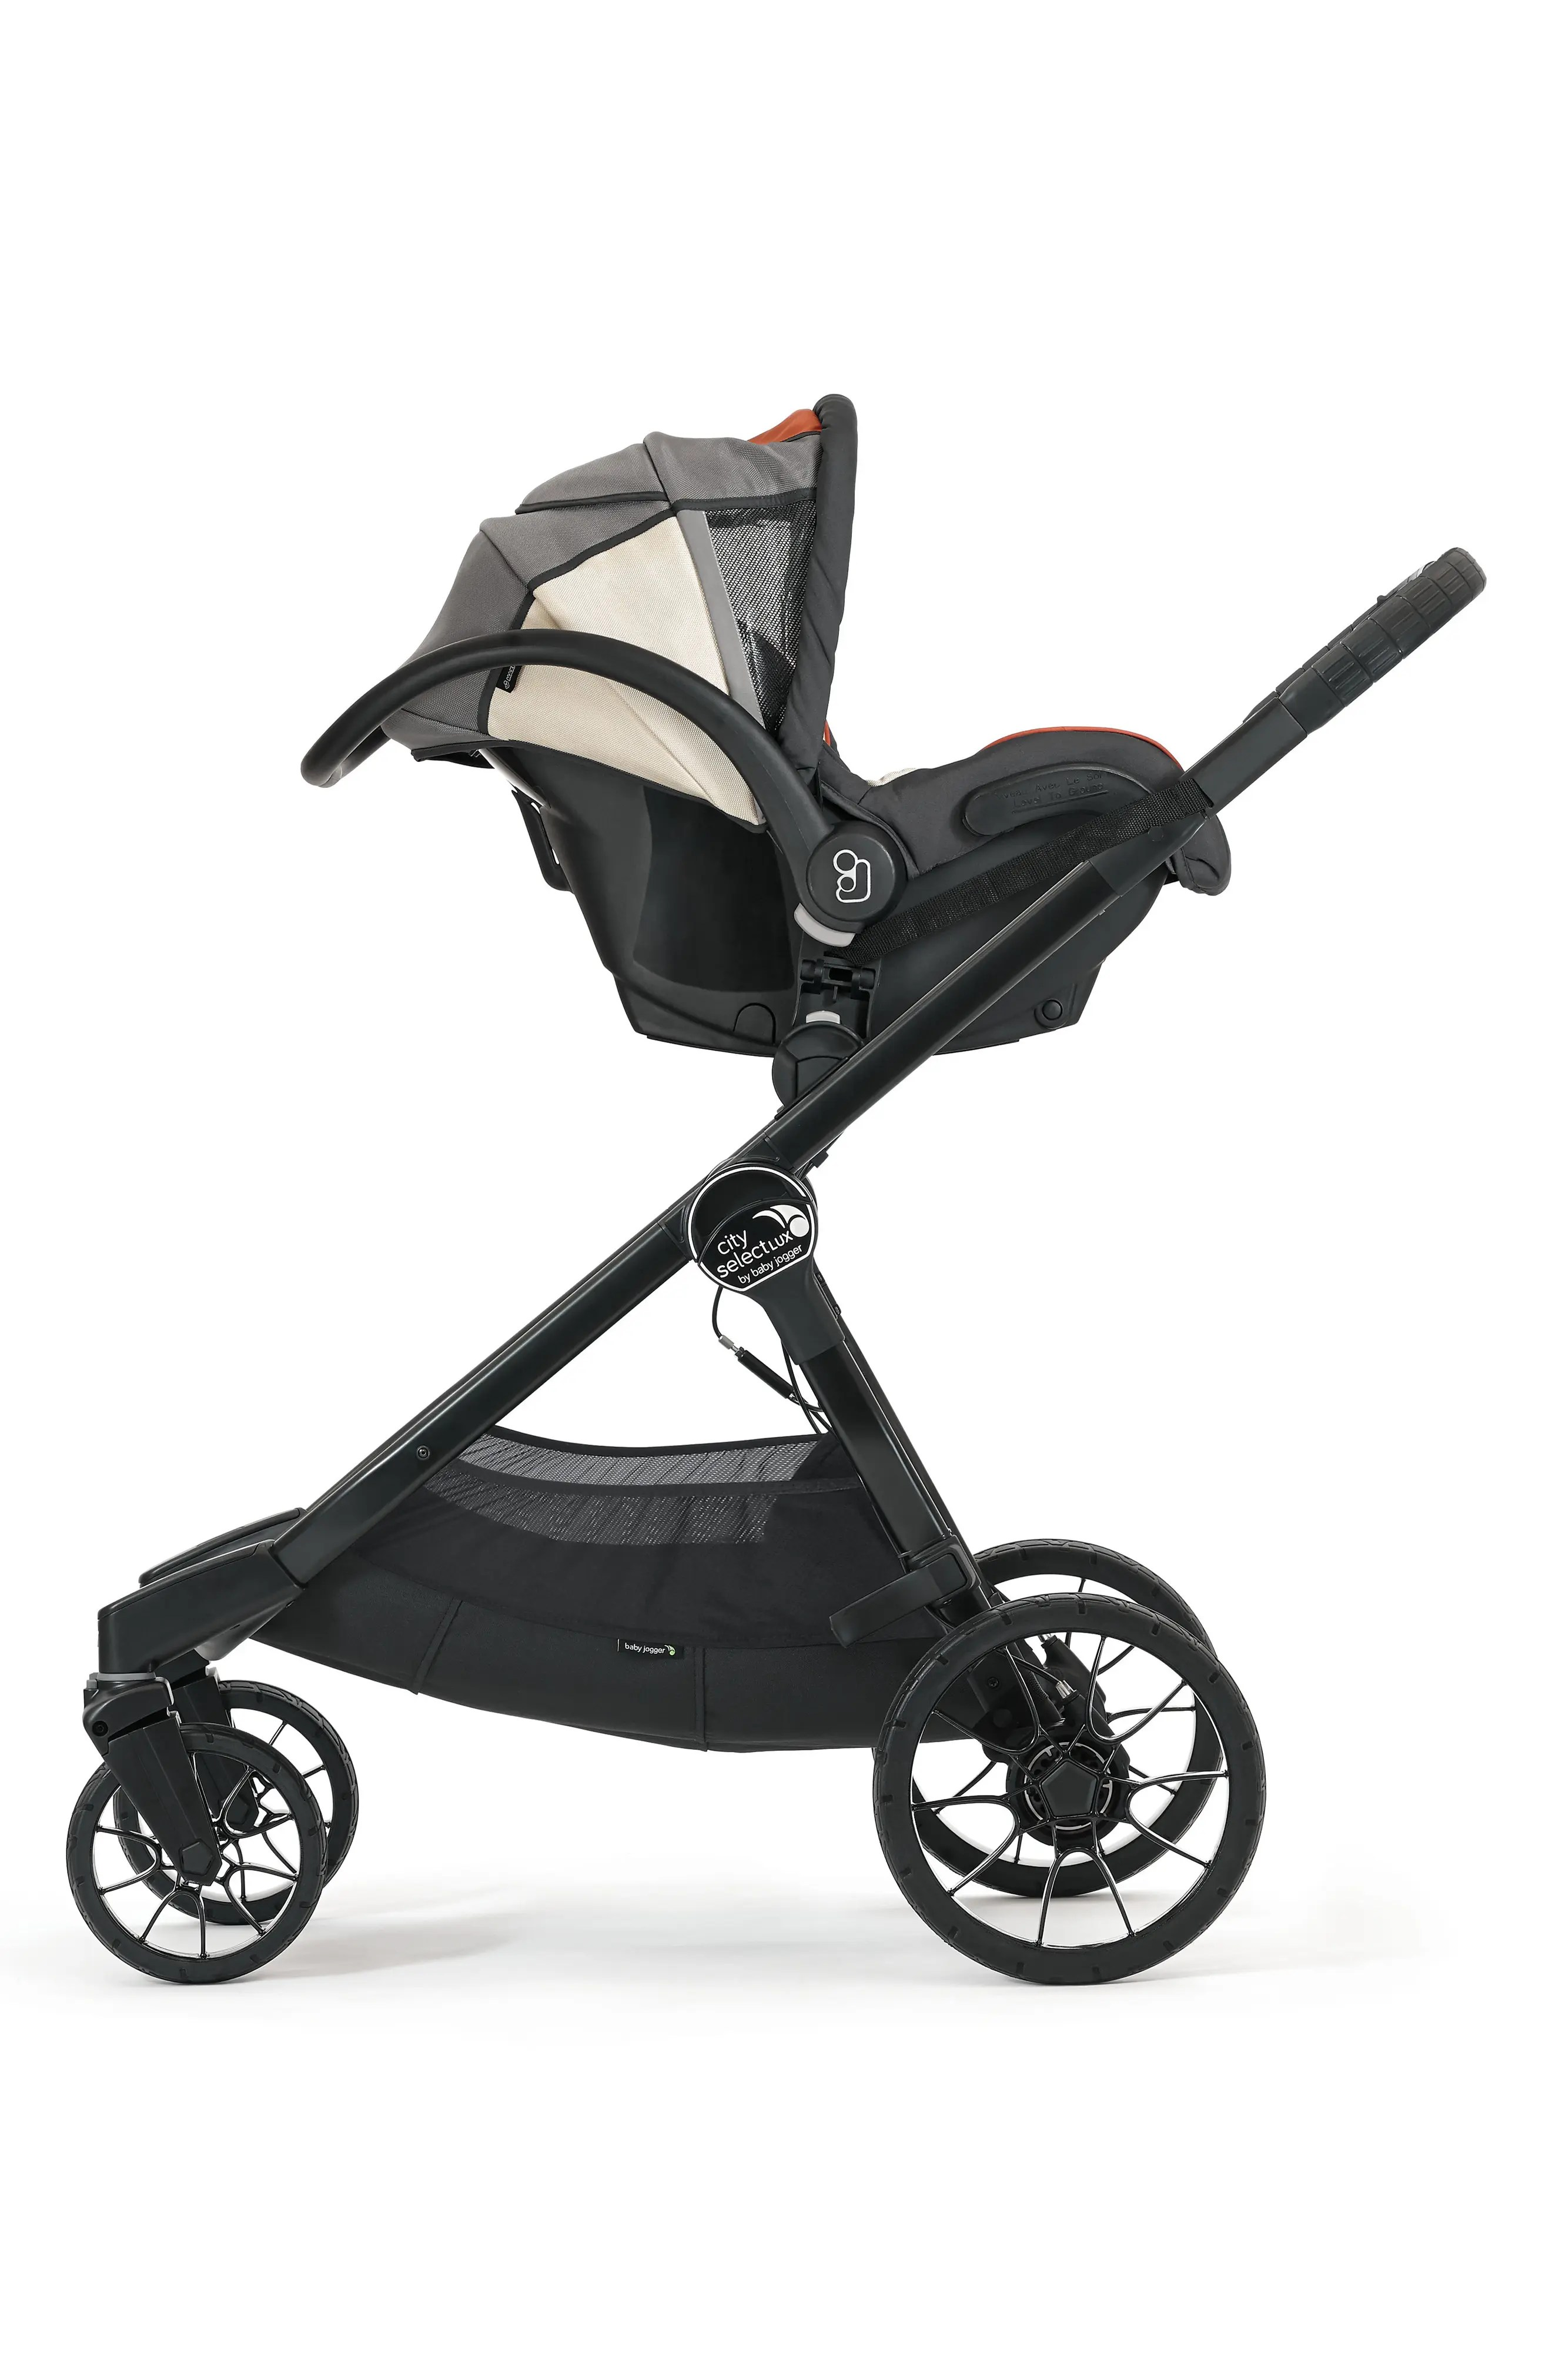 Baby Jogger City Select City Select City Premier Stroller To Cybex Nuna Maxi Cosi Car Seat Adapter